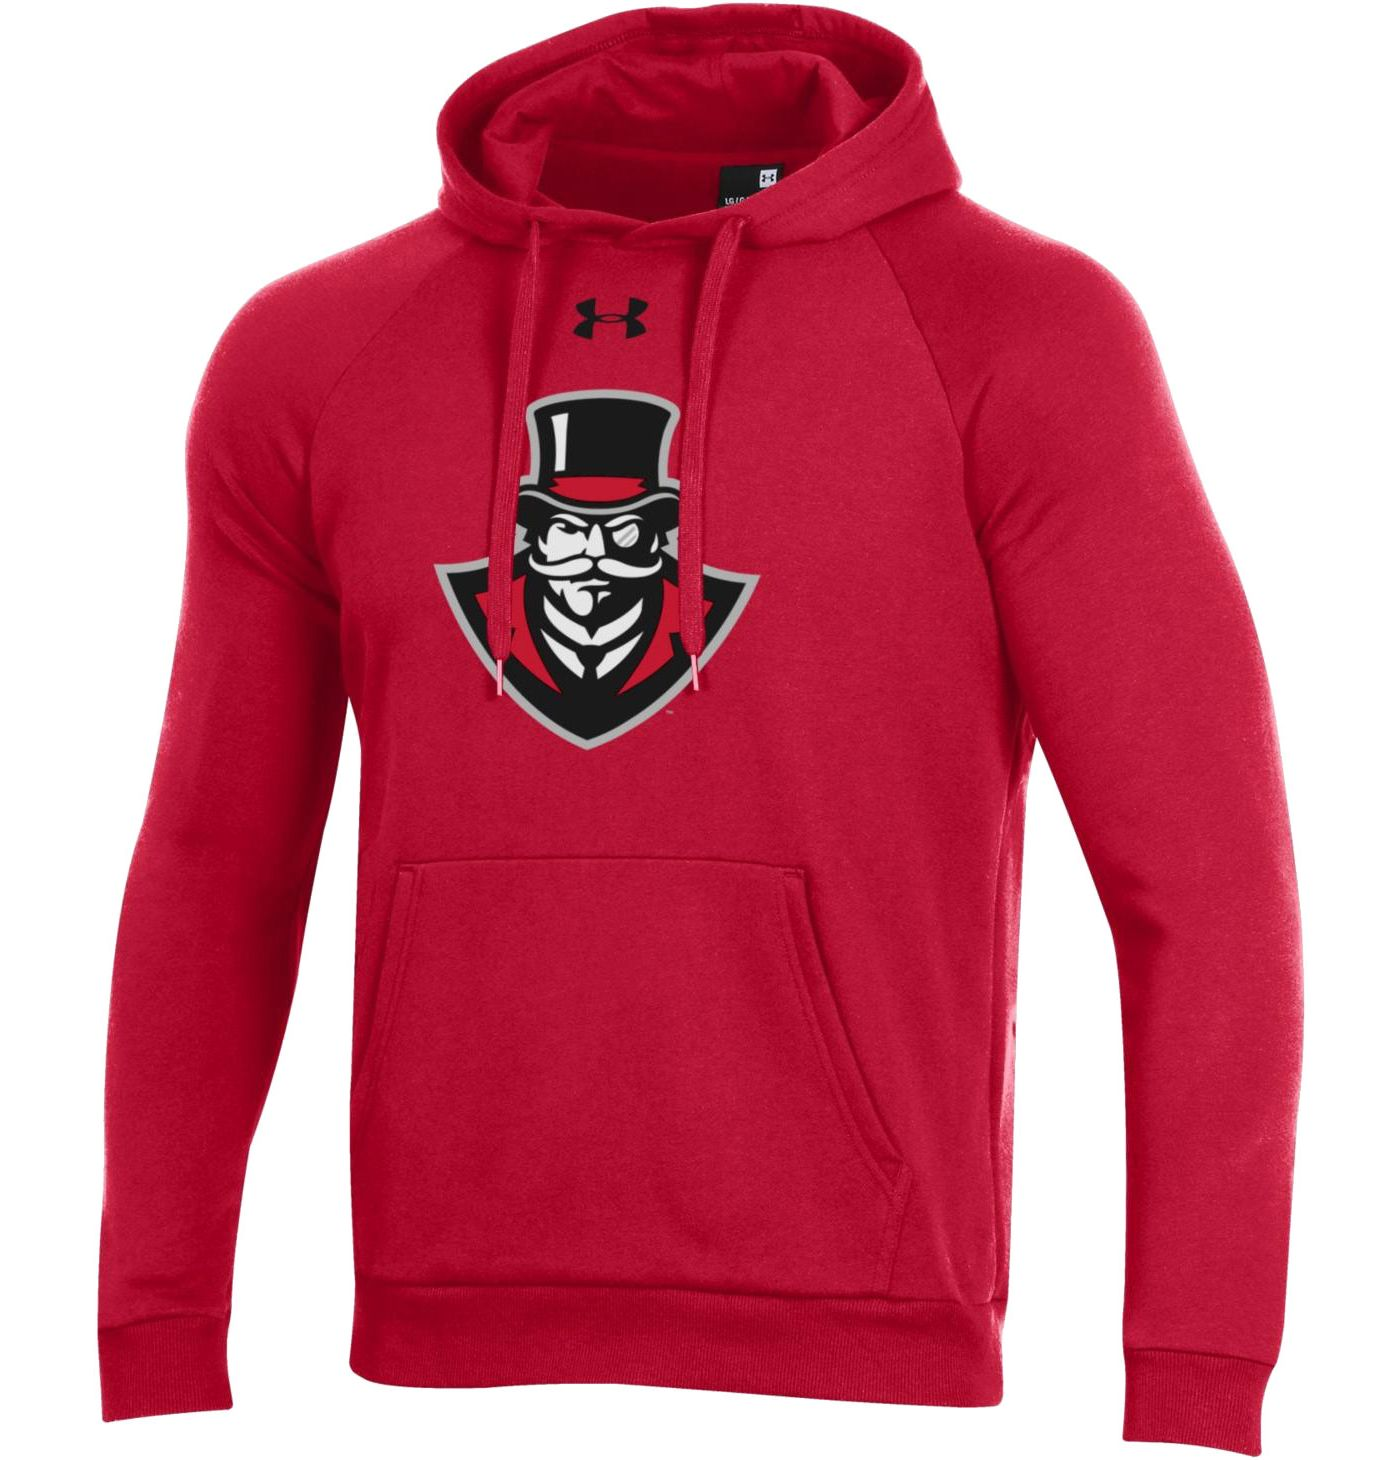 Under Armour Men's Austin Peay Governors Red All Day Hoodie